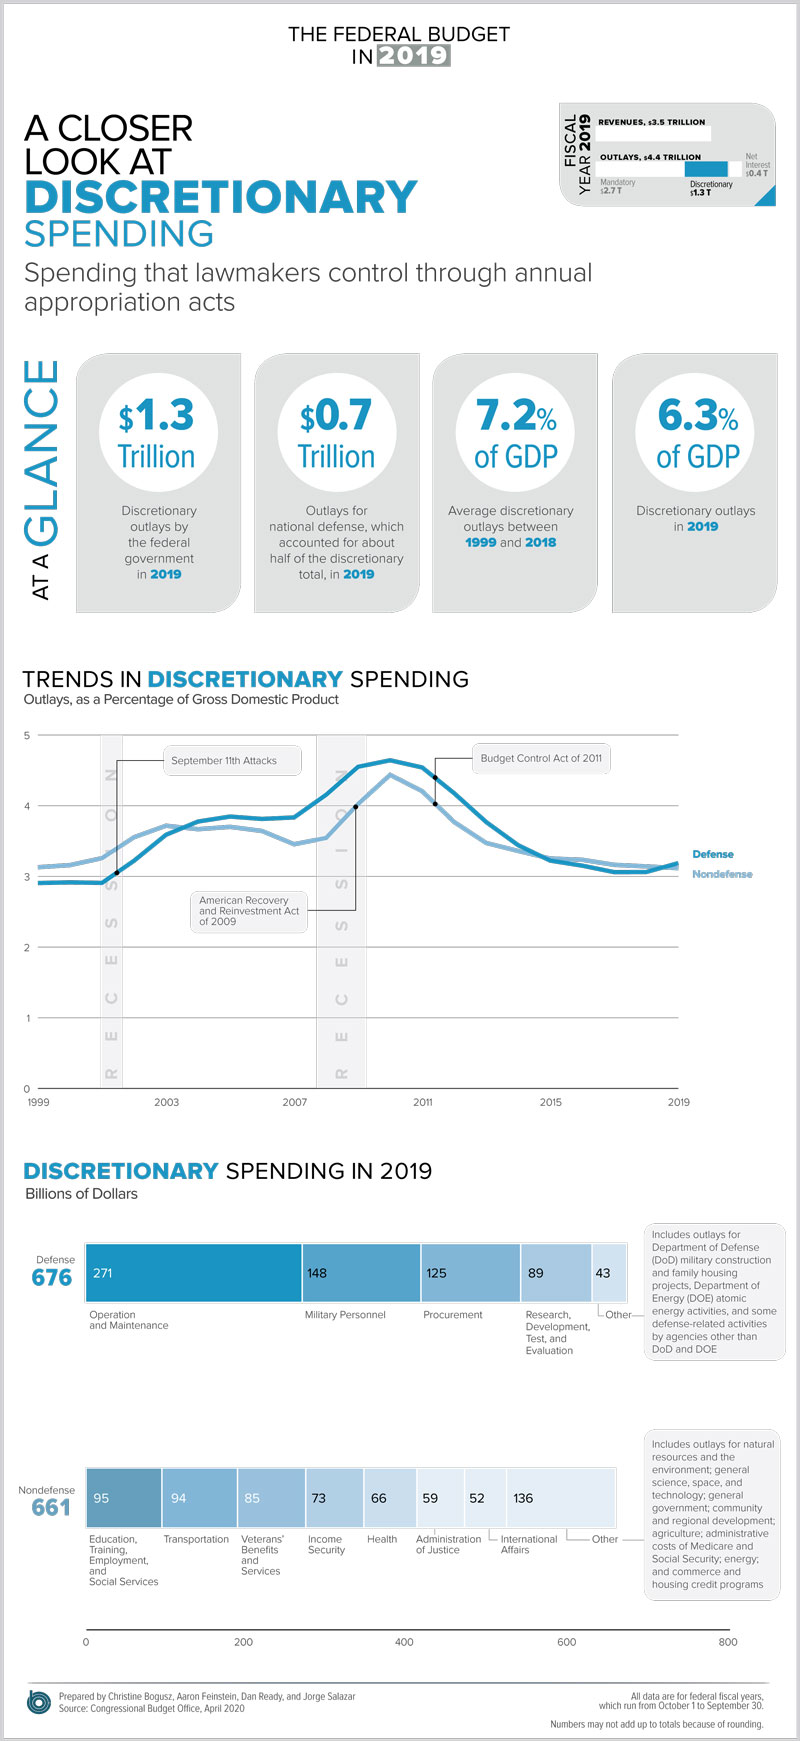 A closer look at discretionary spending